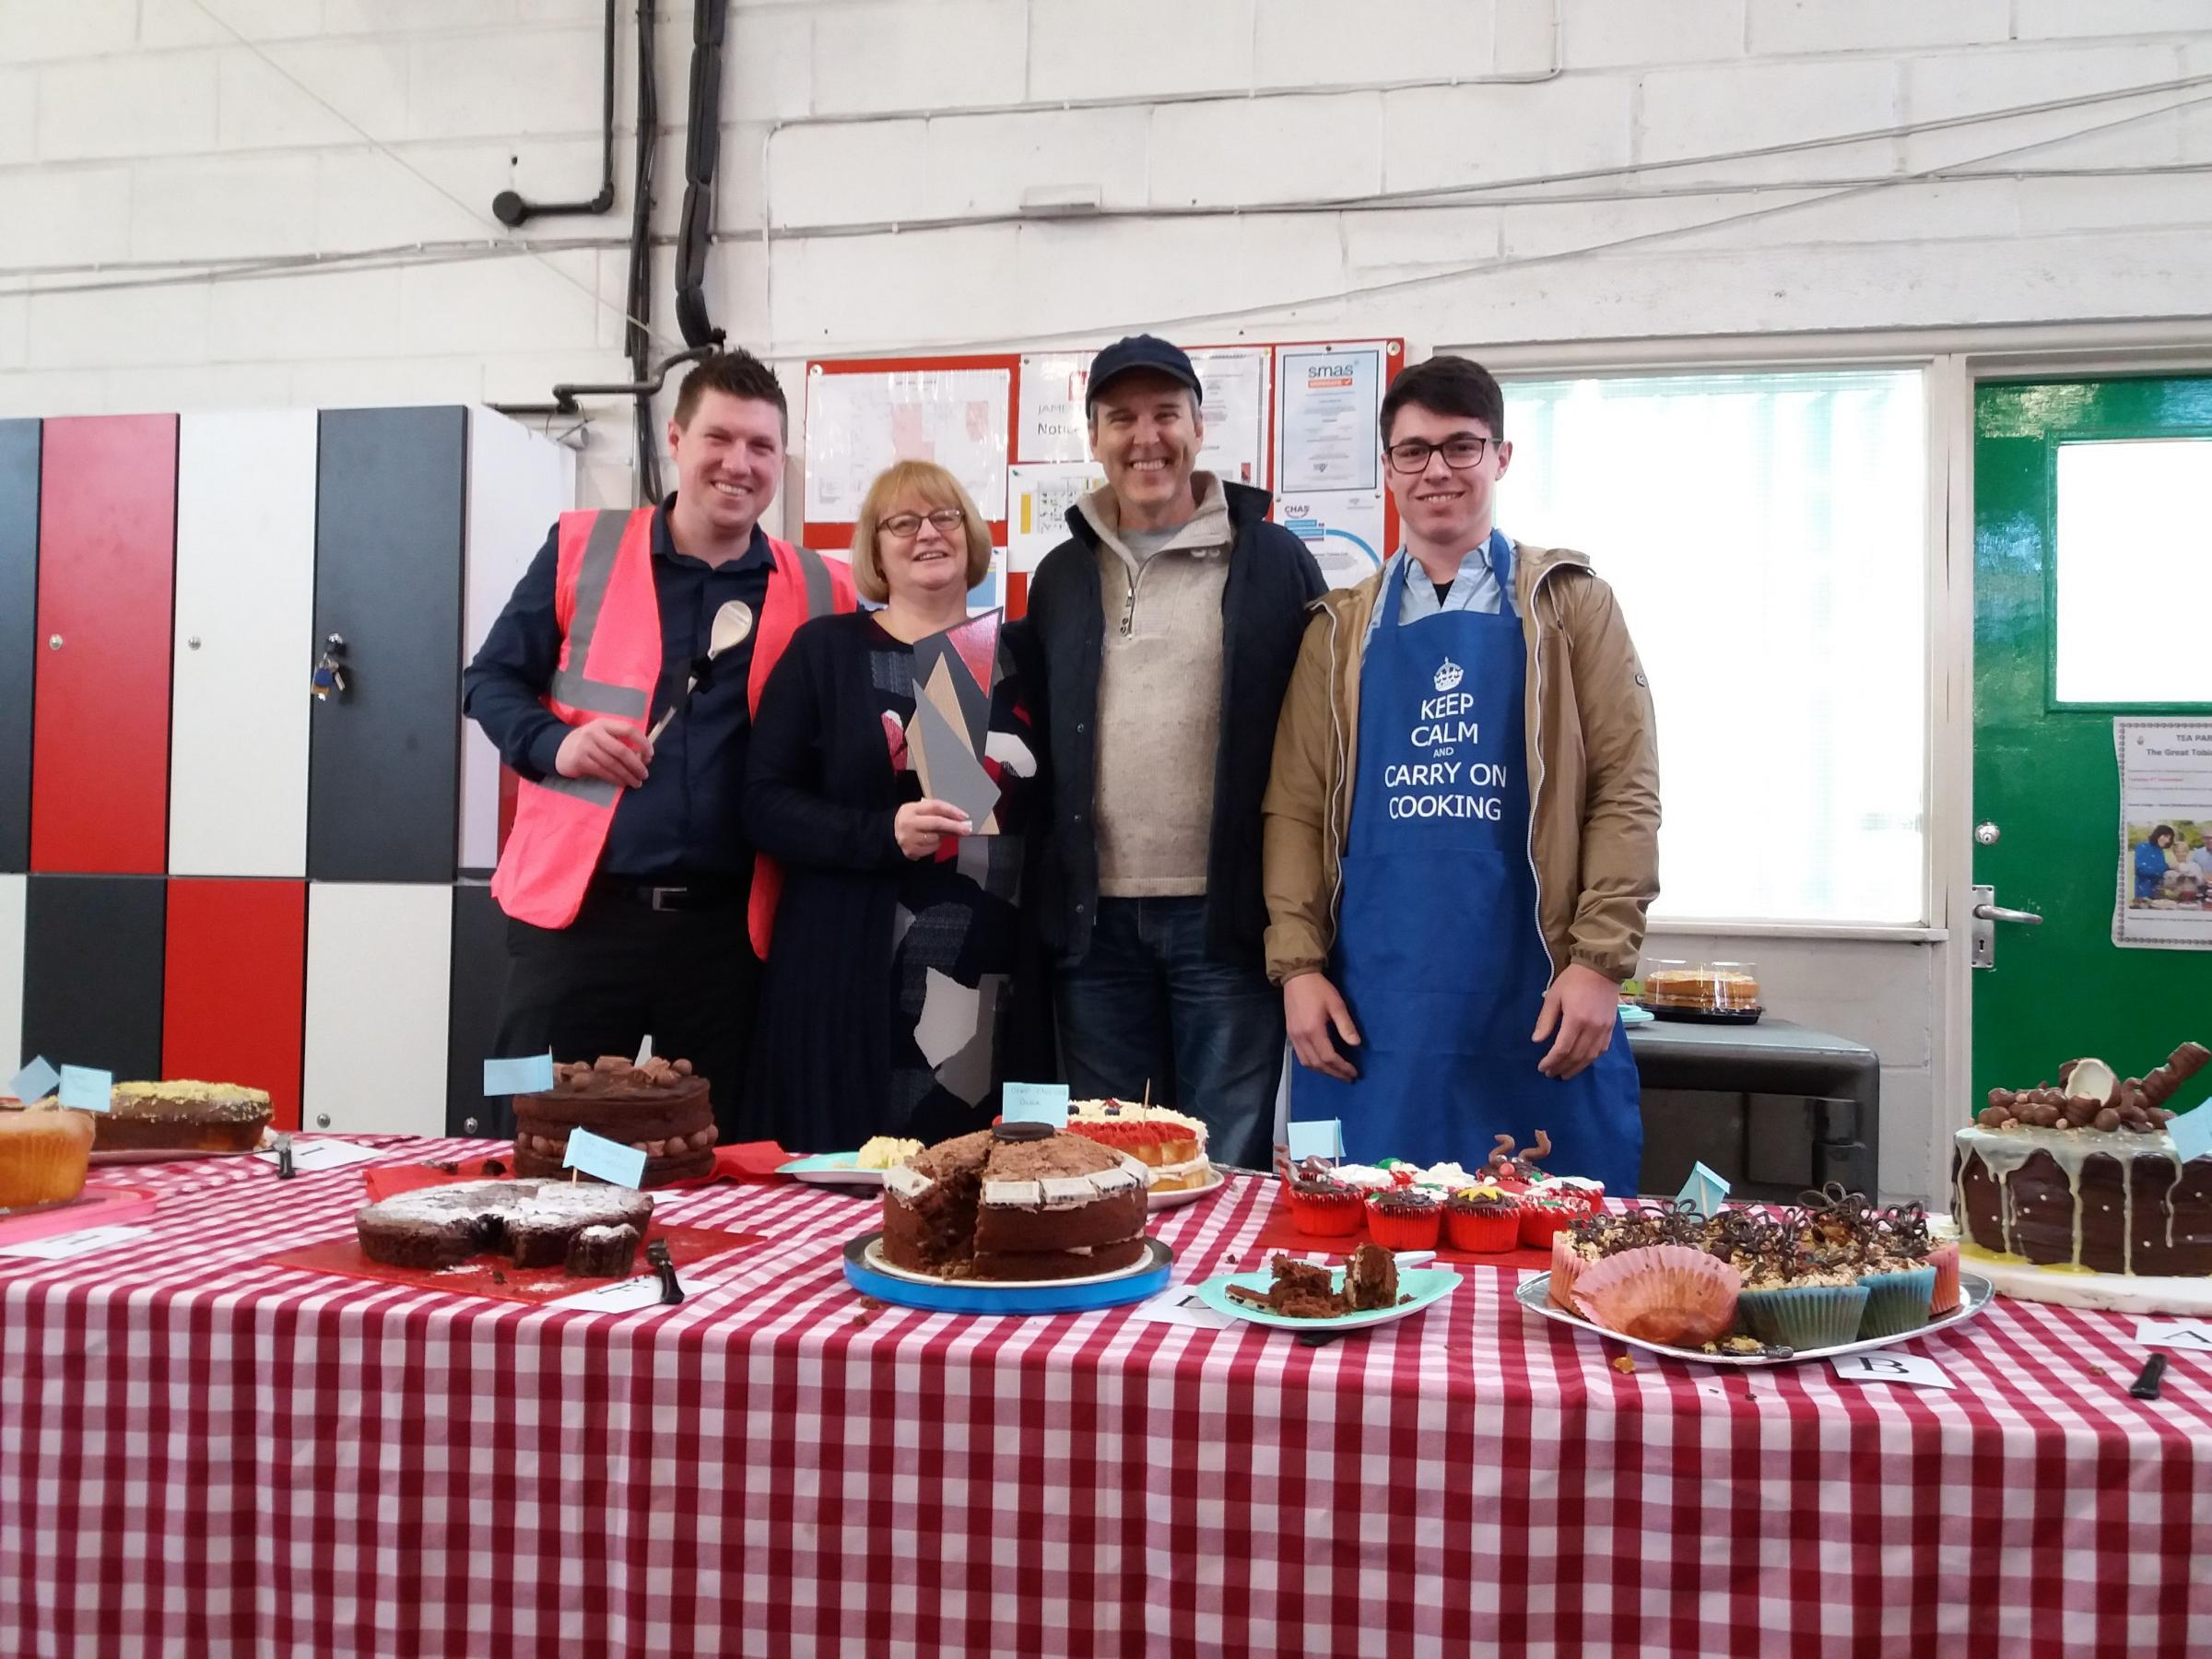 BAKE-OFF: (L-R) Wooden spoon winner Dean Goodall, 1st prize Denise Williams, guest judge Mike Kitch and runner-up Kristian Vearncombe